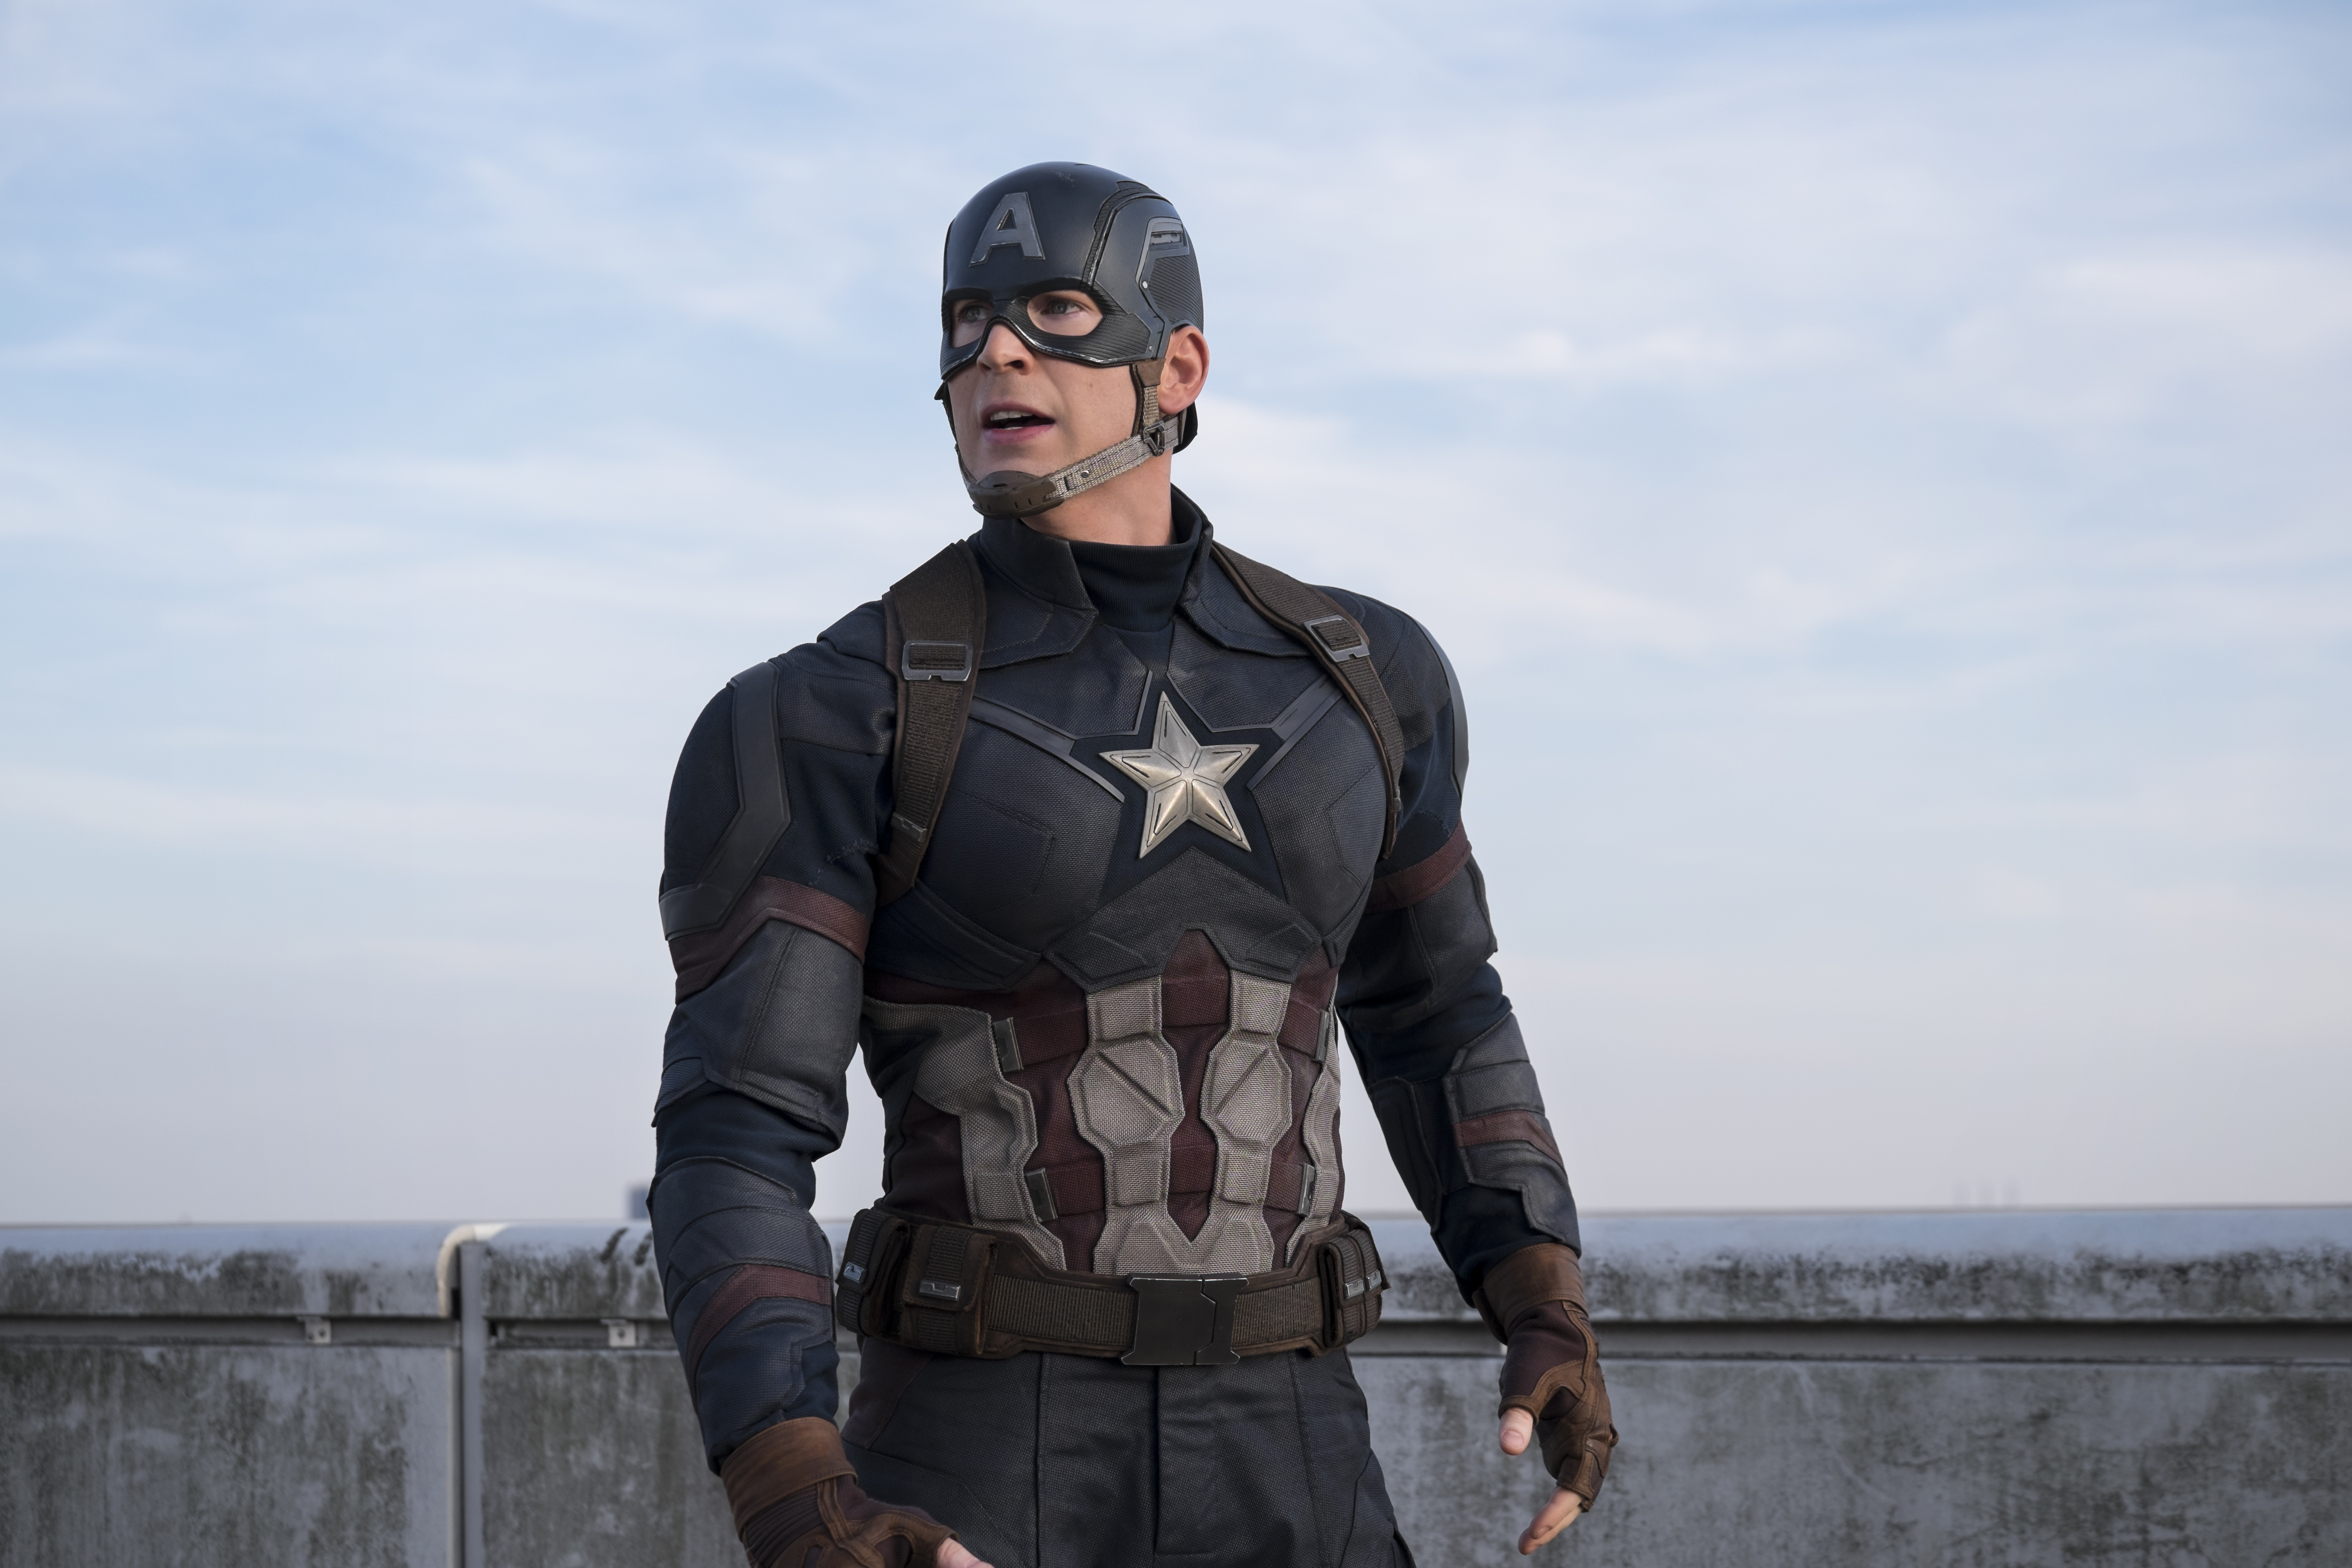 Chris Evans and Tom Holland are charging fans $350-$495 for